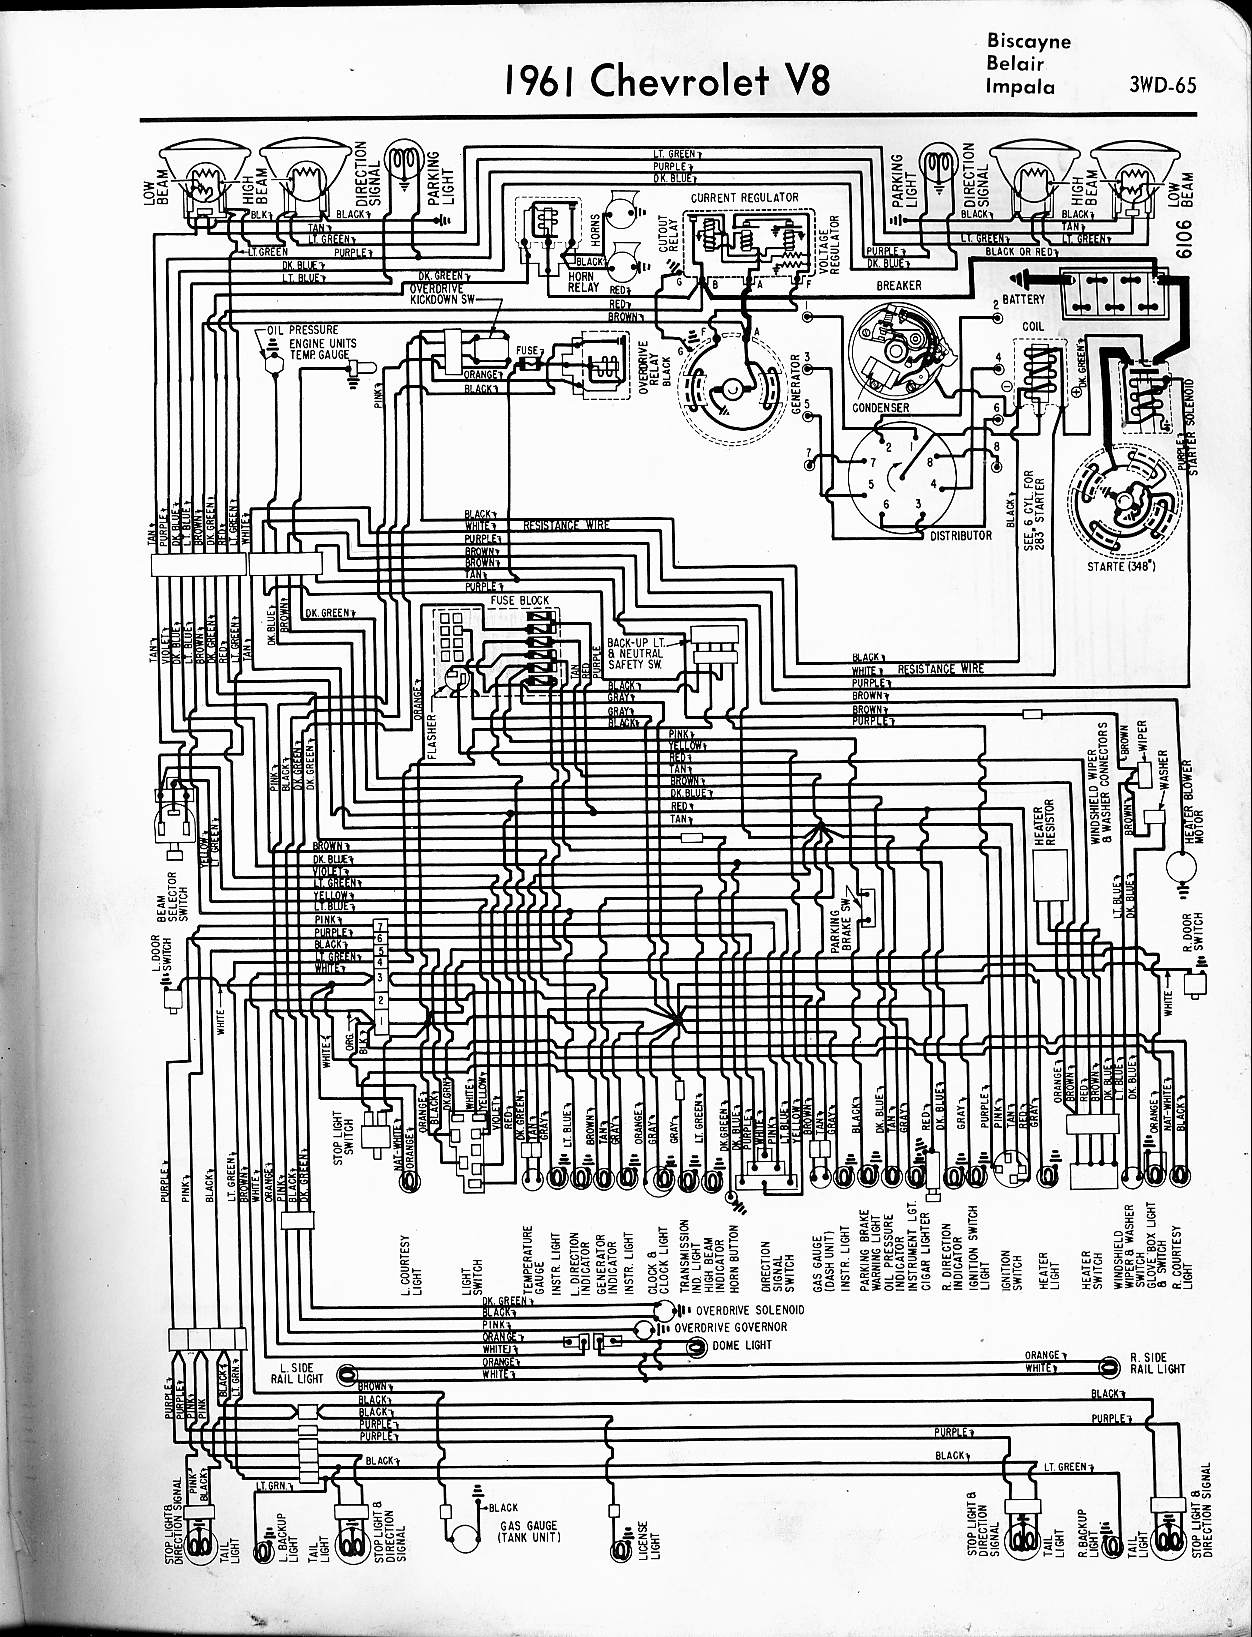 1965 Malibu Wiring Diagram Reinvent Your Yamaha Schematic Chevy Trusted Schematics Rh Propeller Sf Com 1963